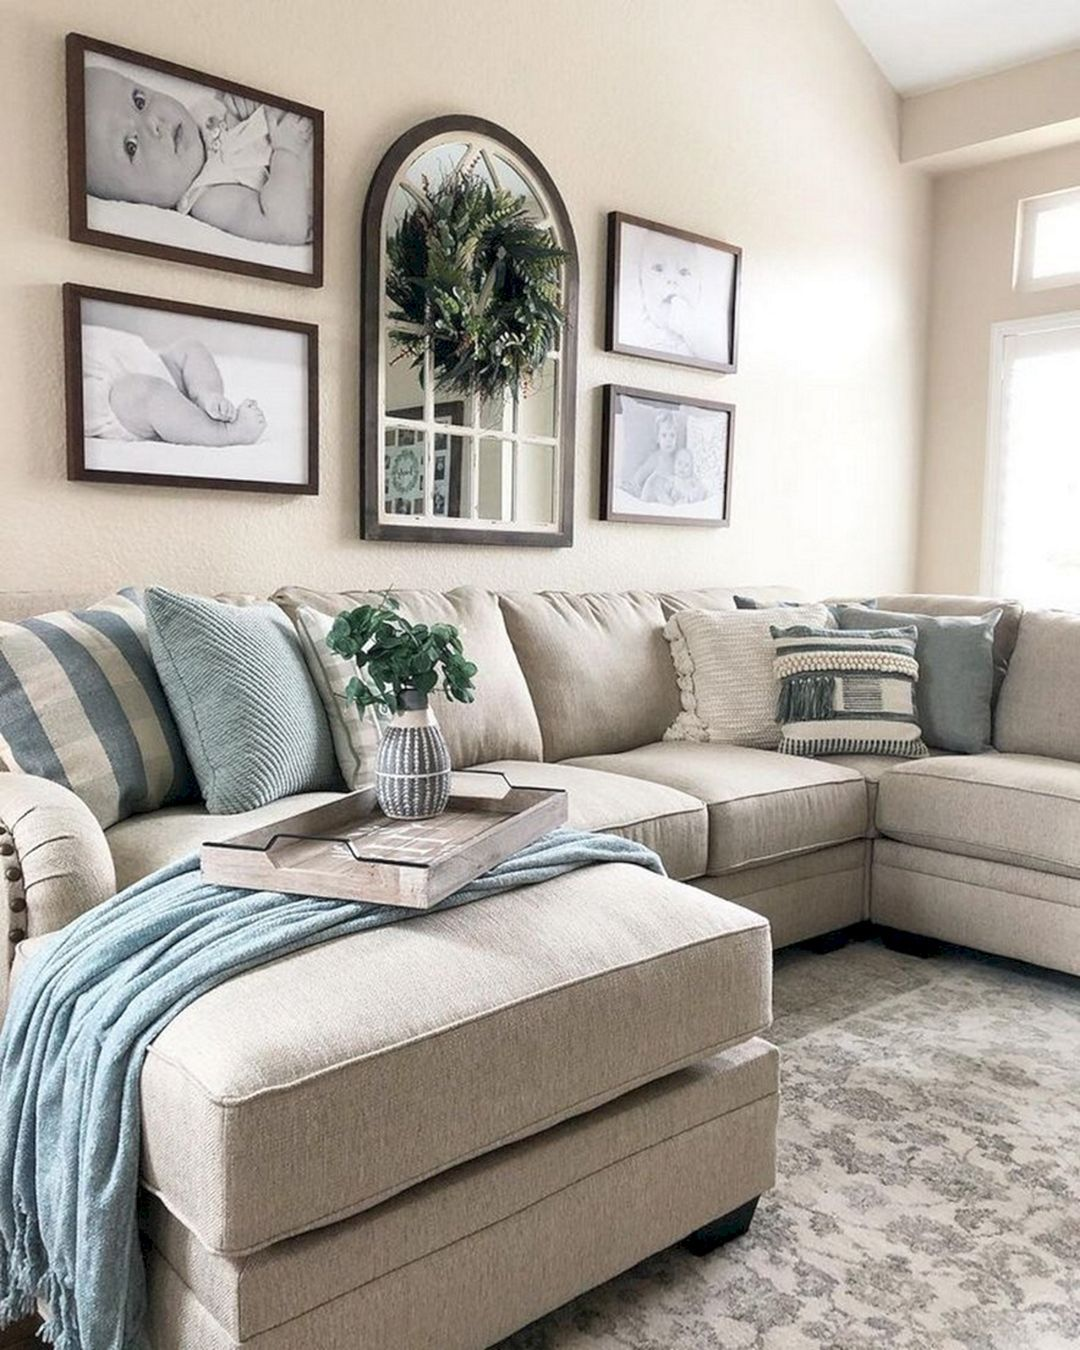 Best 10 Attractive Farmhouse Living Room Design And Decoration Ideas Decor It S Living Room Sofa Design Couches Living Room Farmhouse Decor Living Room